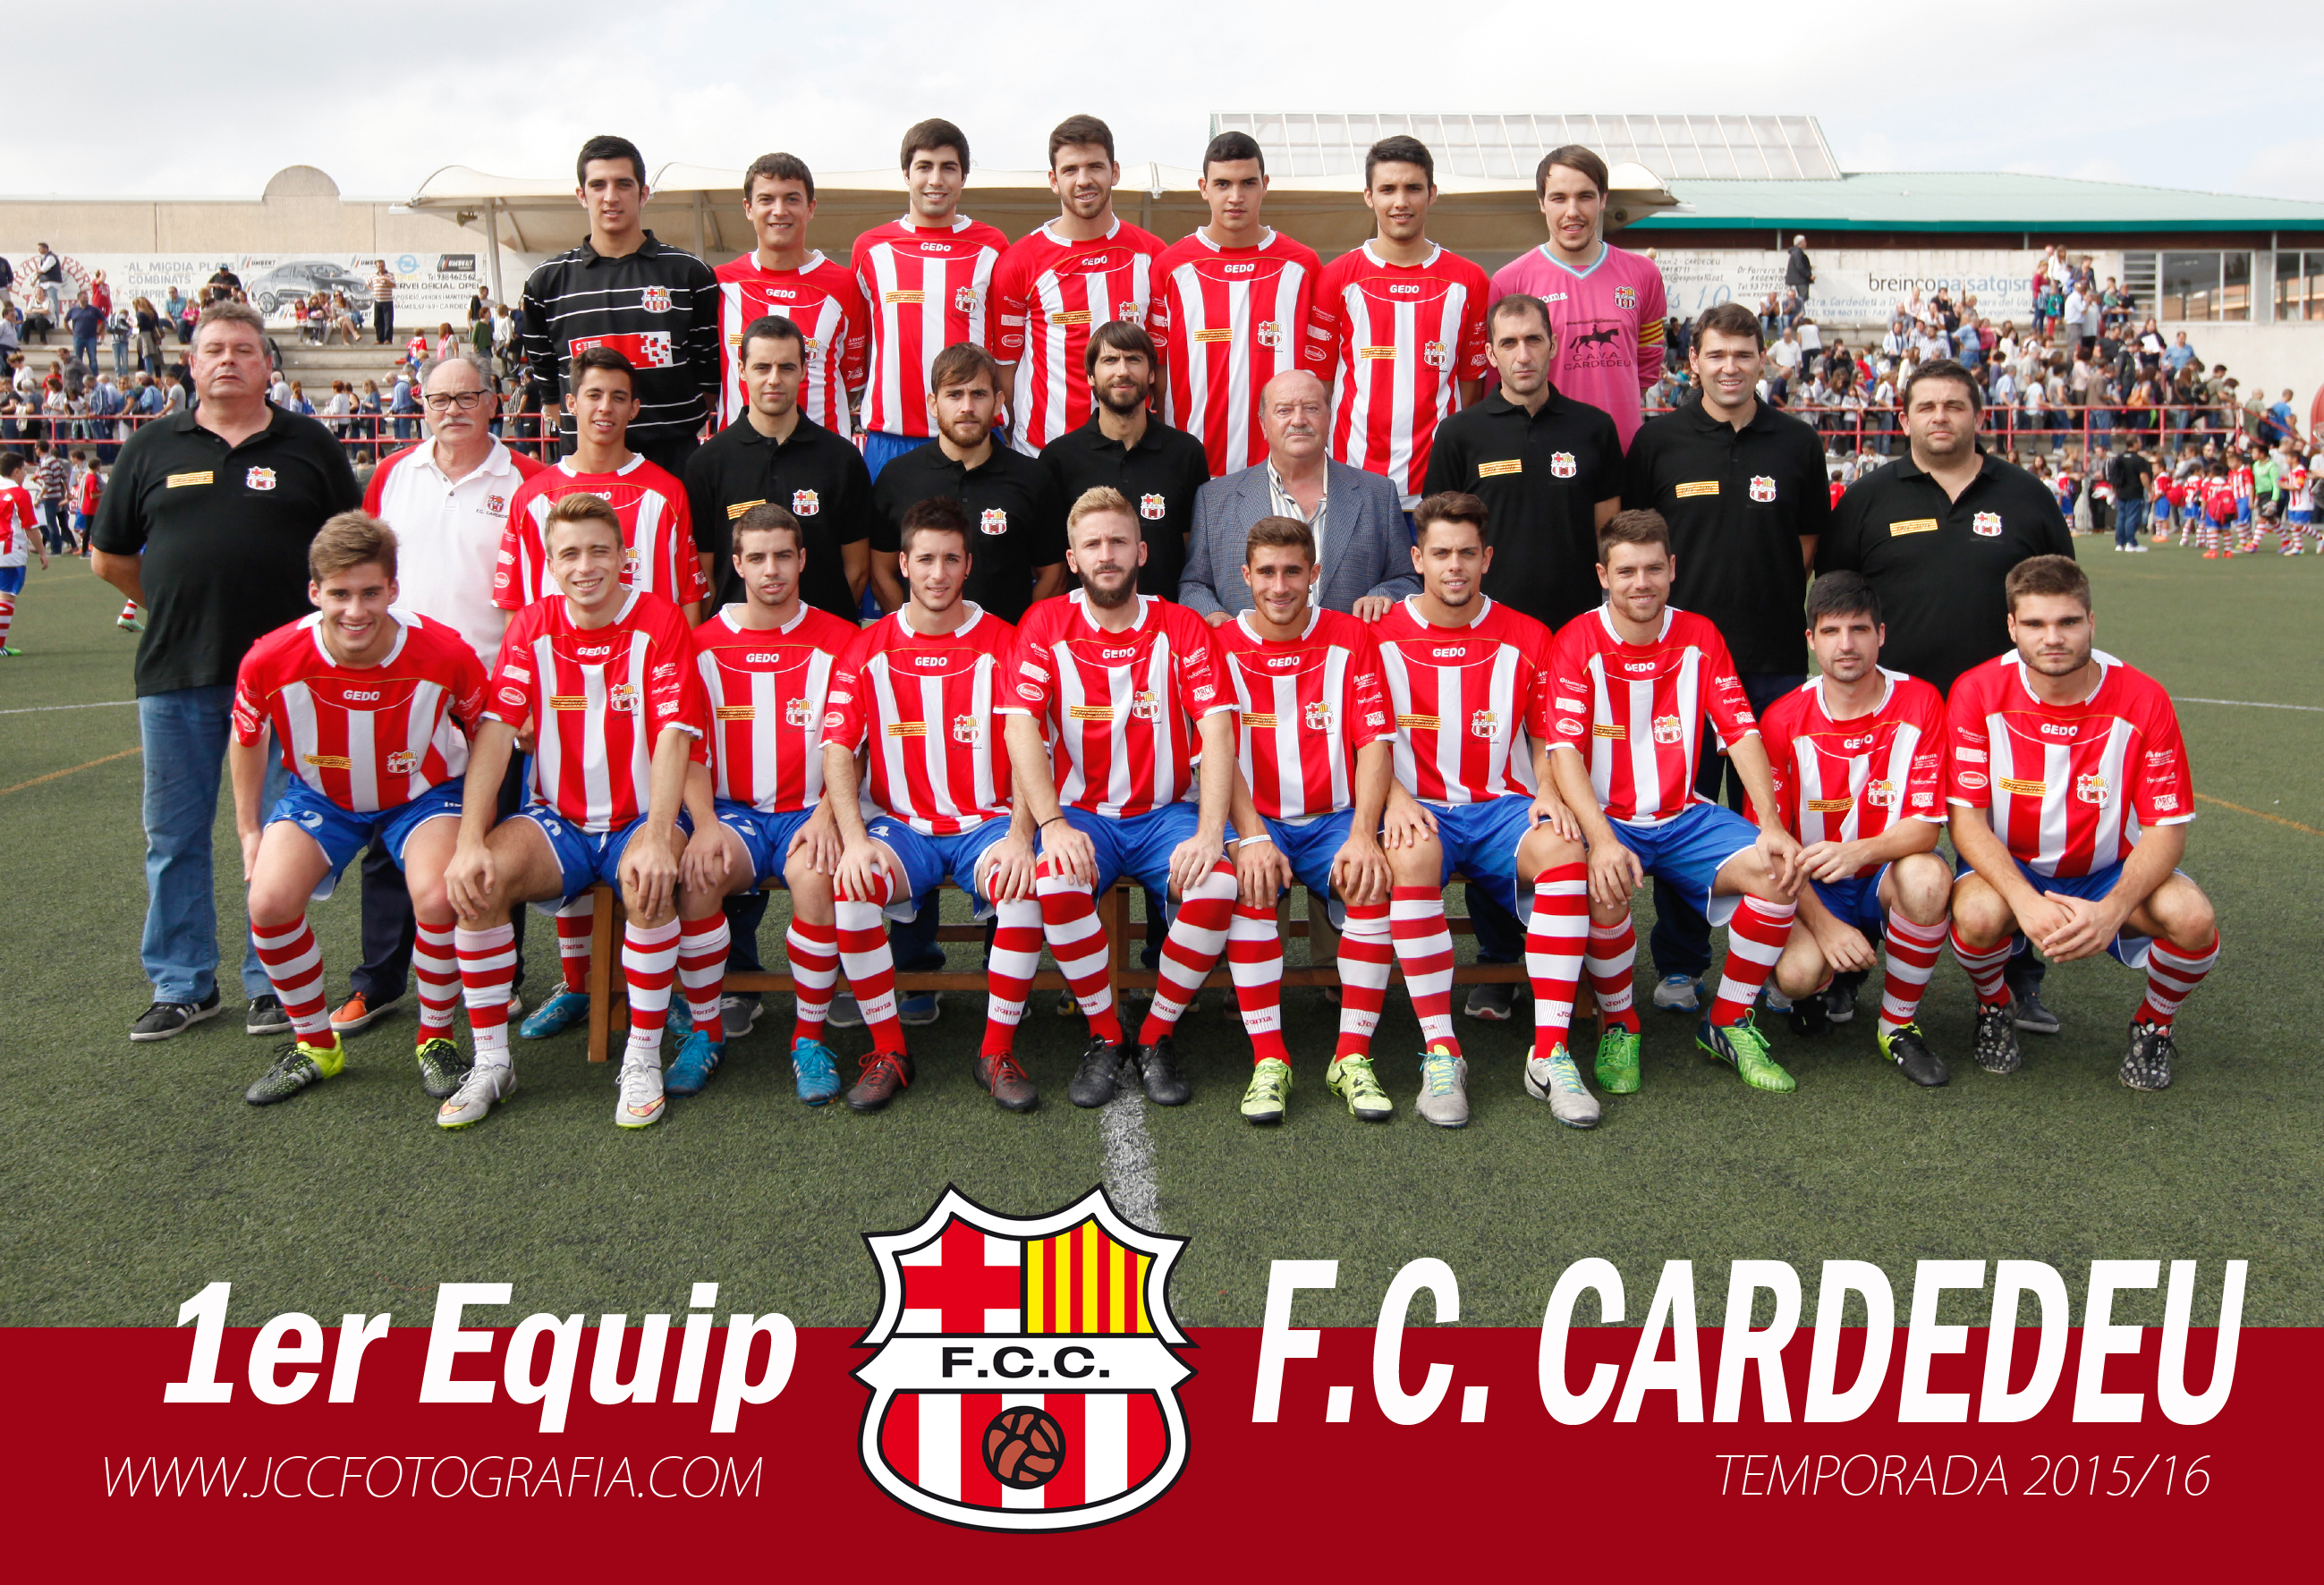 1 equipo